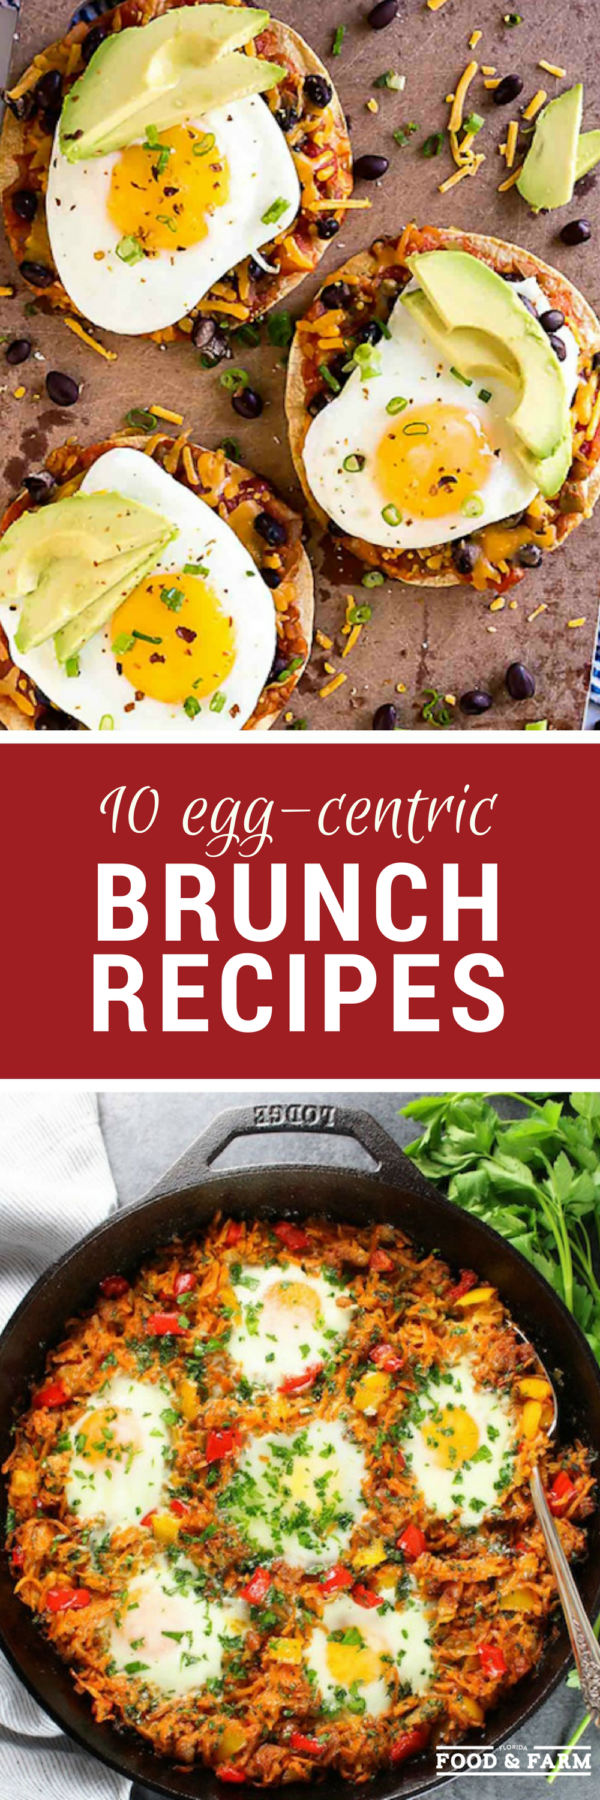 10 savory breakfast and brunch recipes